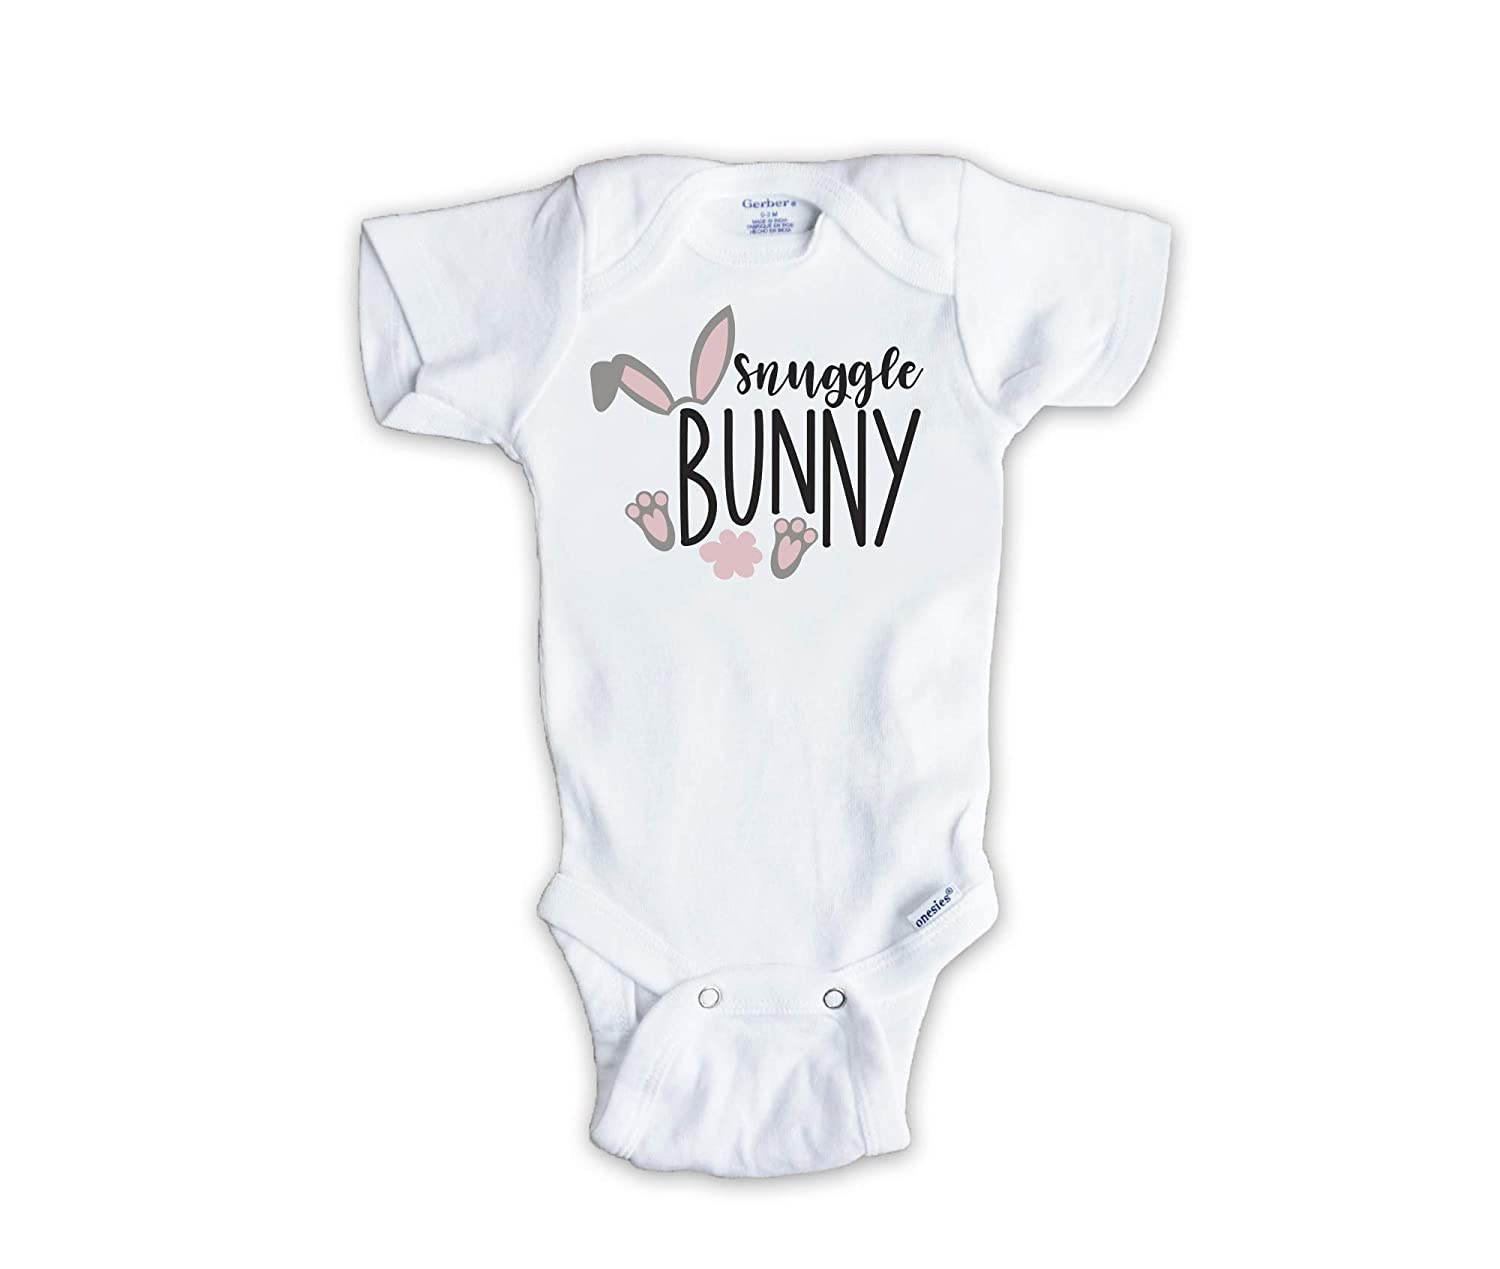 Snuggle San Jose Mall Bunny Onesie Tshirt Easter Free Shipping New For Gift Baby Rabbit